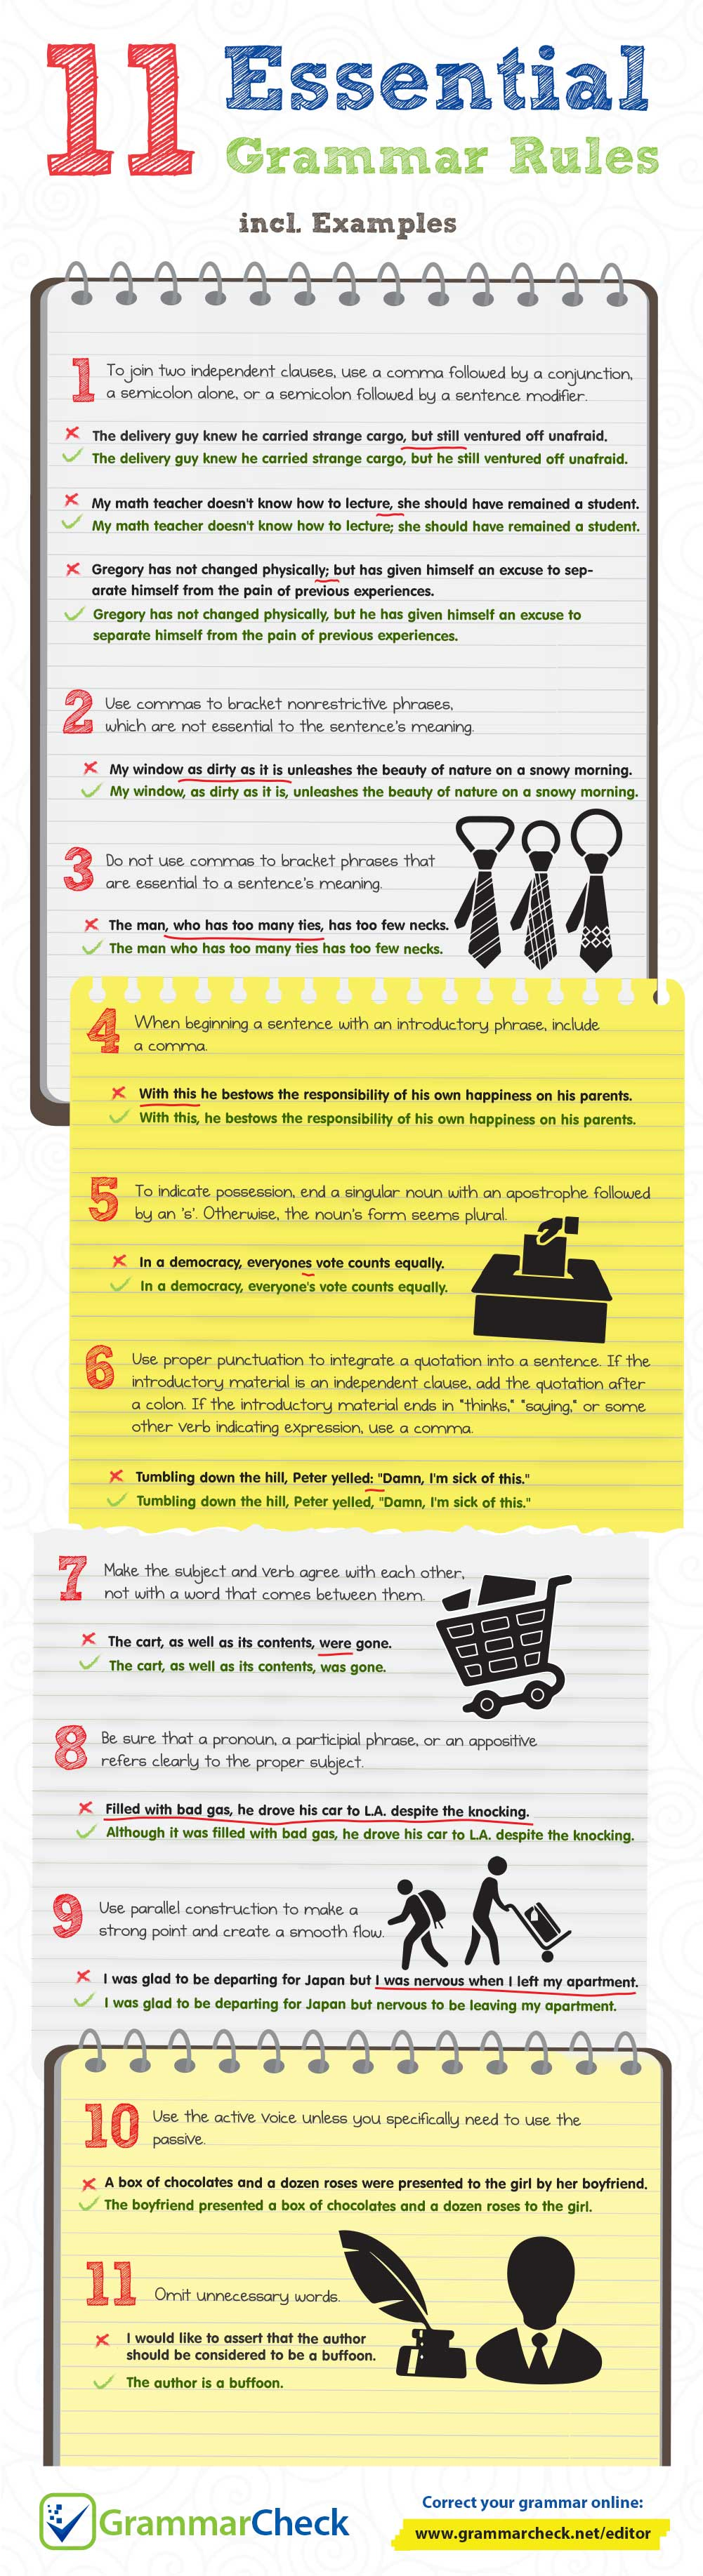 11 Essential Grammar Rules Incl Examples Infographic